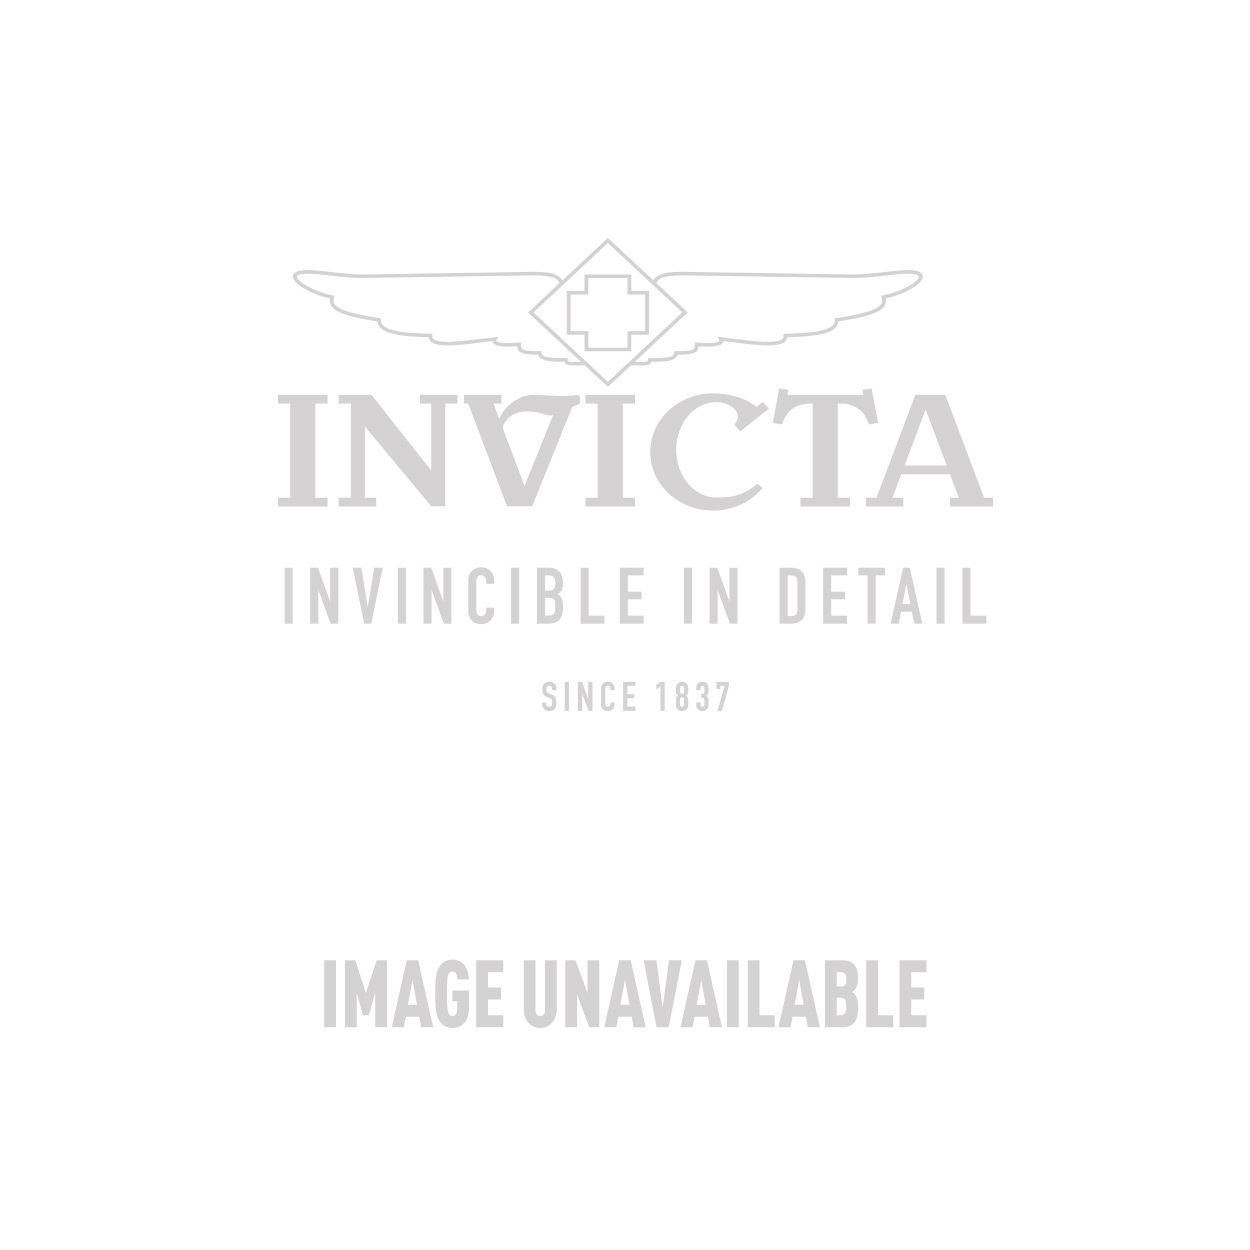 Invicta Speedway Quartz Watch - Stainless Steel case with Green tone Leather band - Model 18369